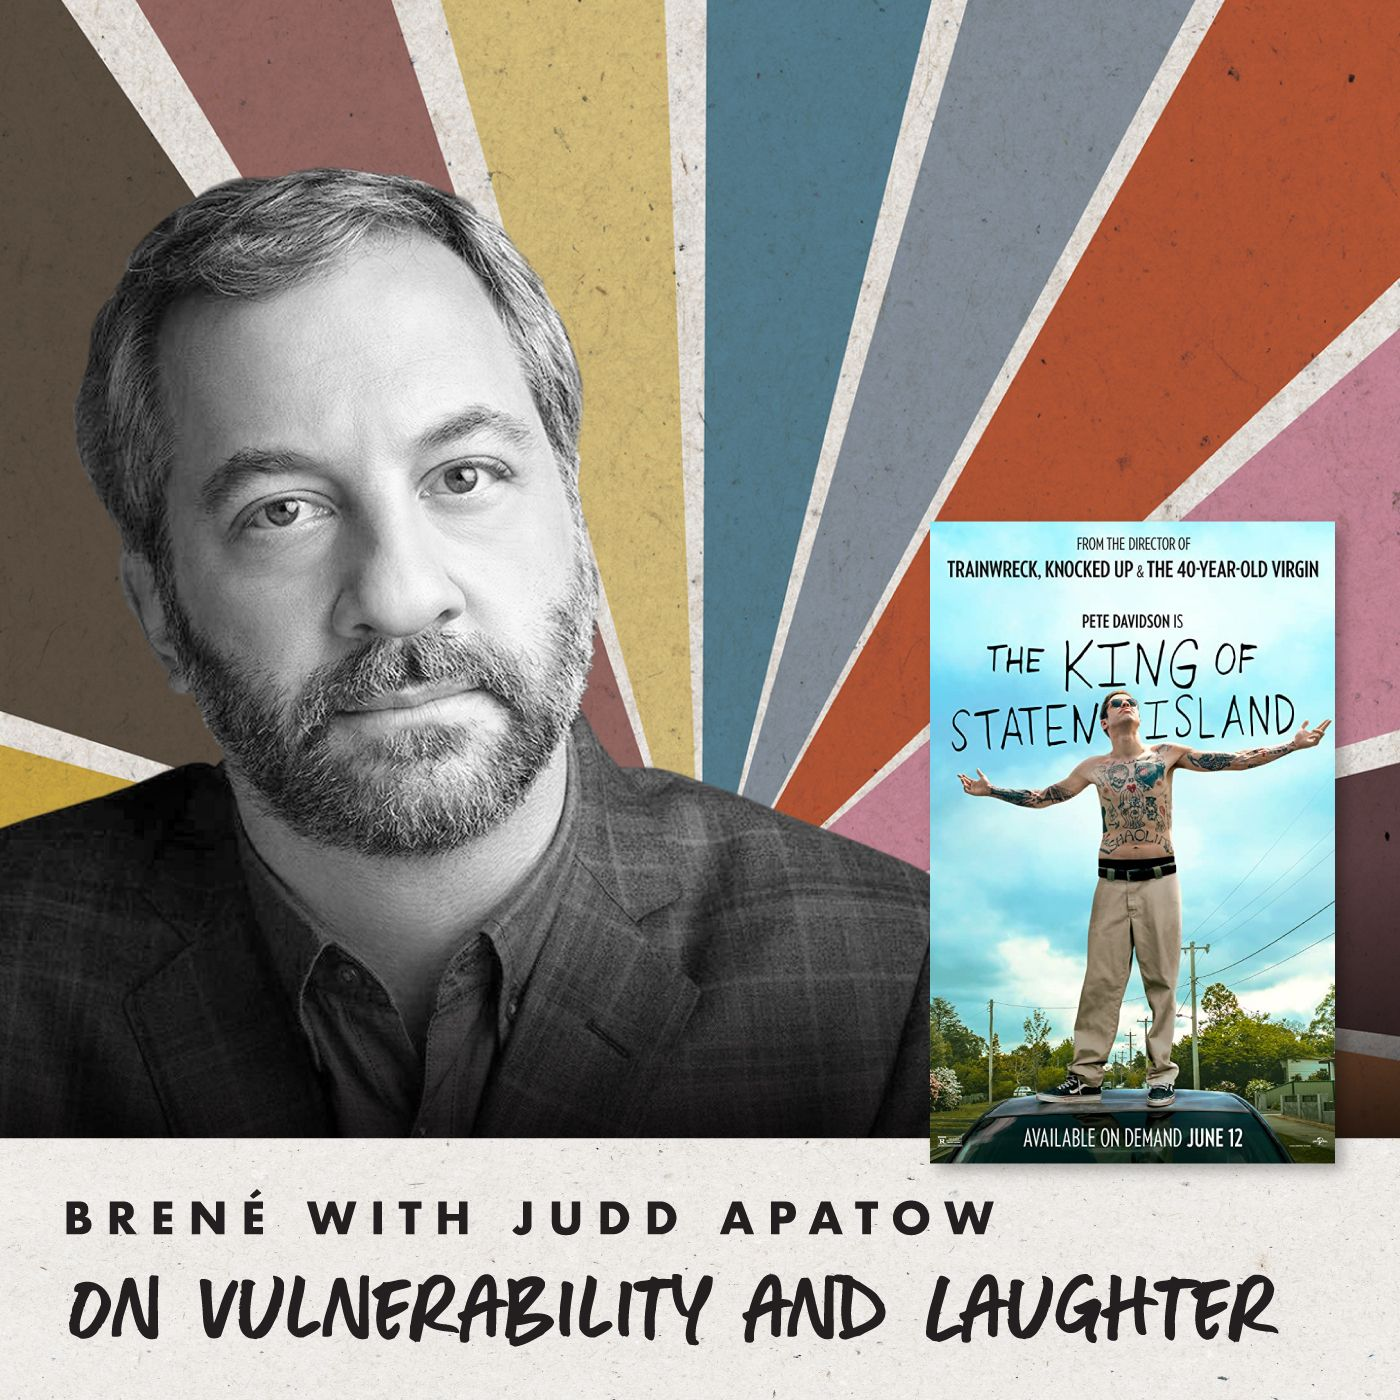 Brené with Judd Apatow on Vulnerability and Laughter